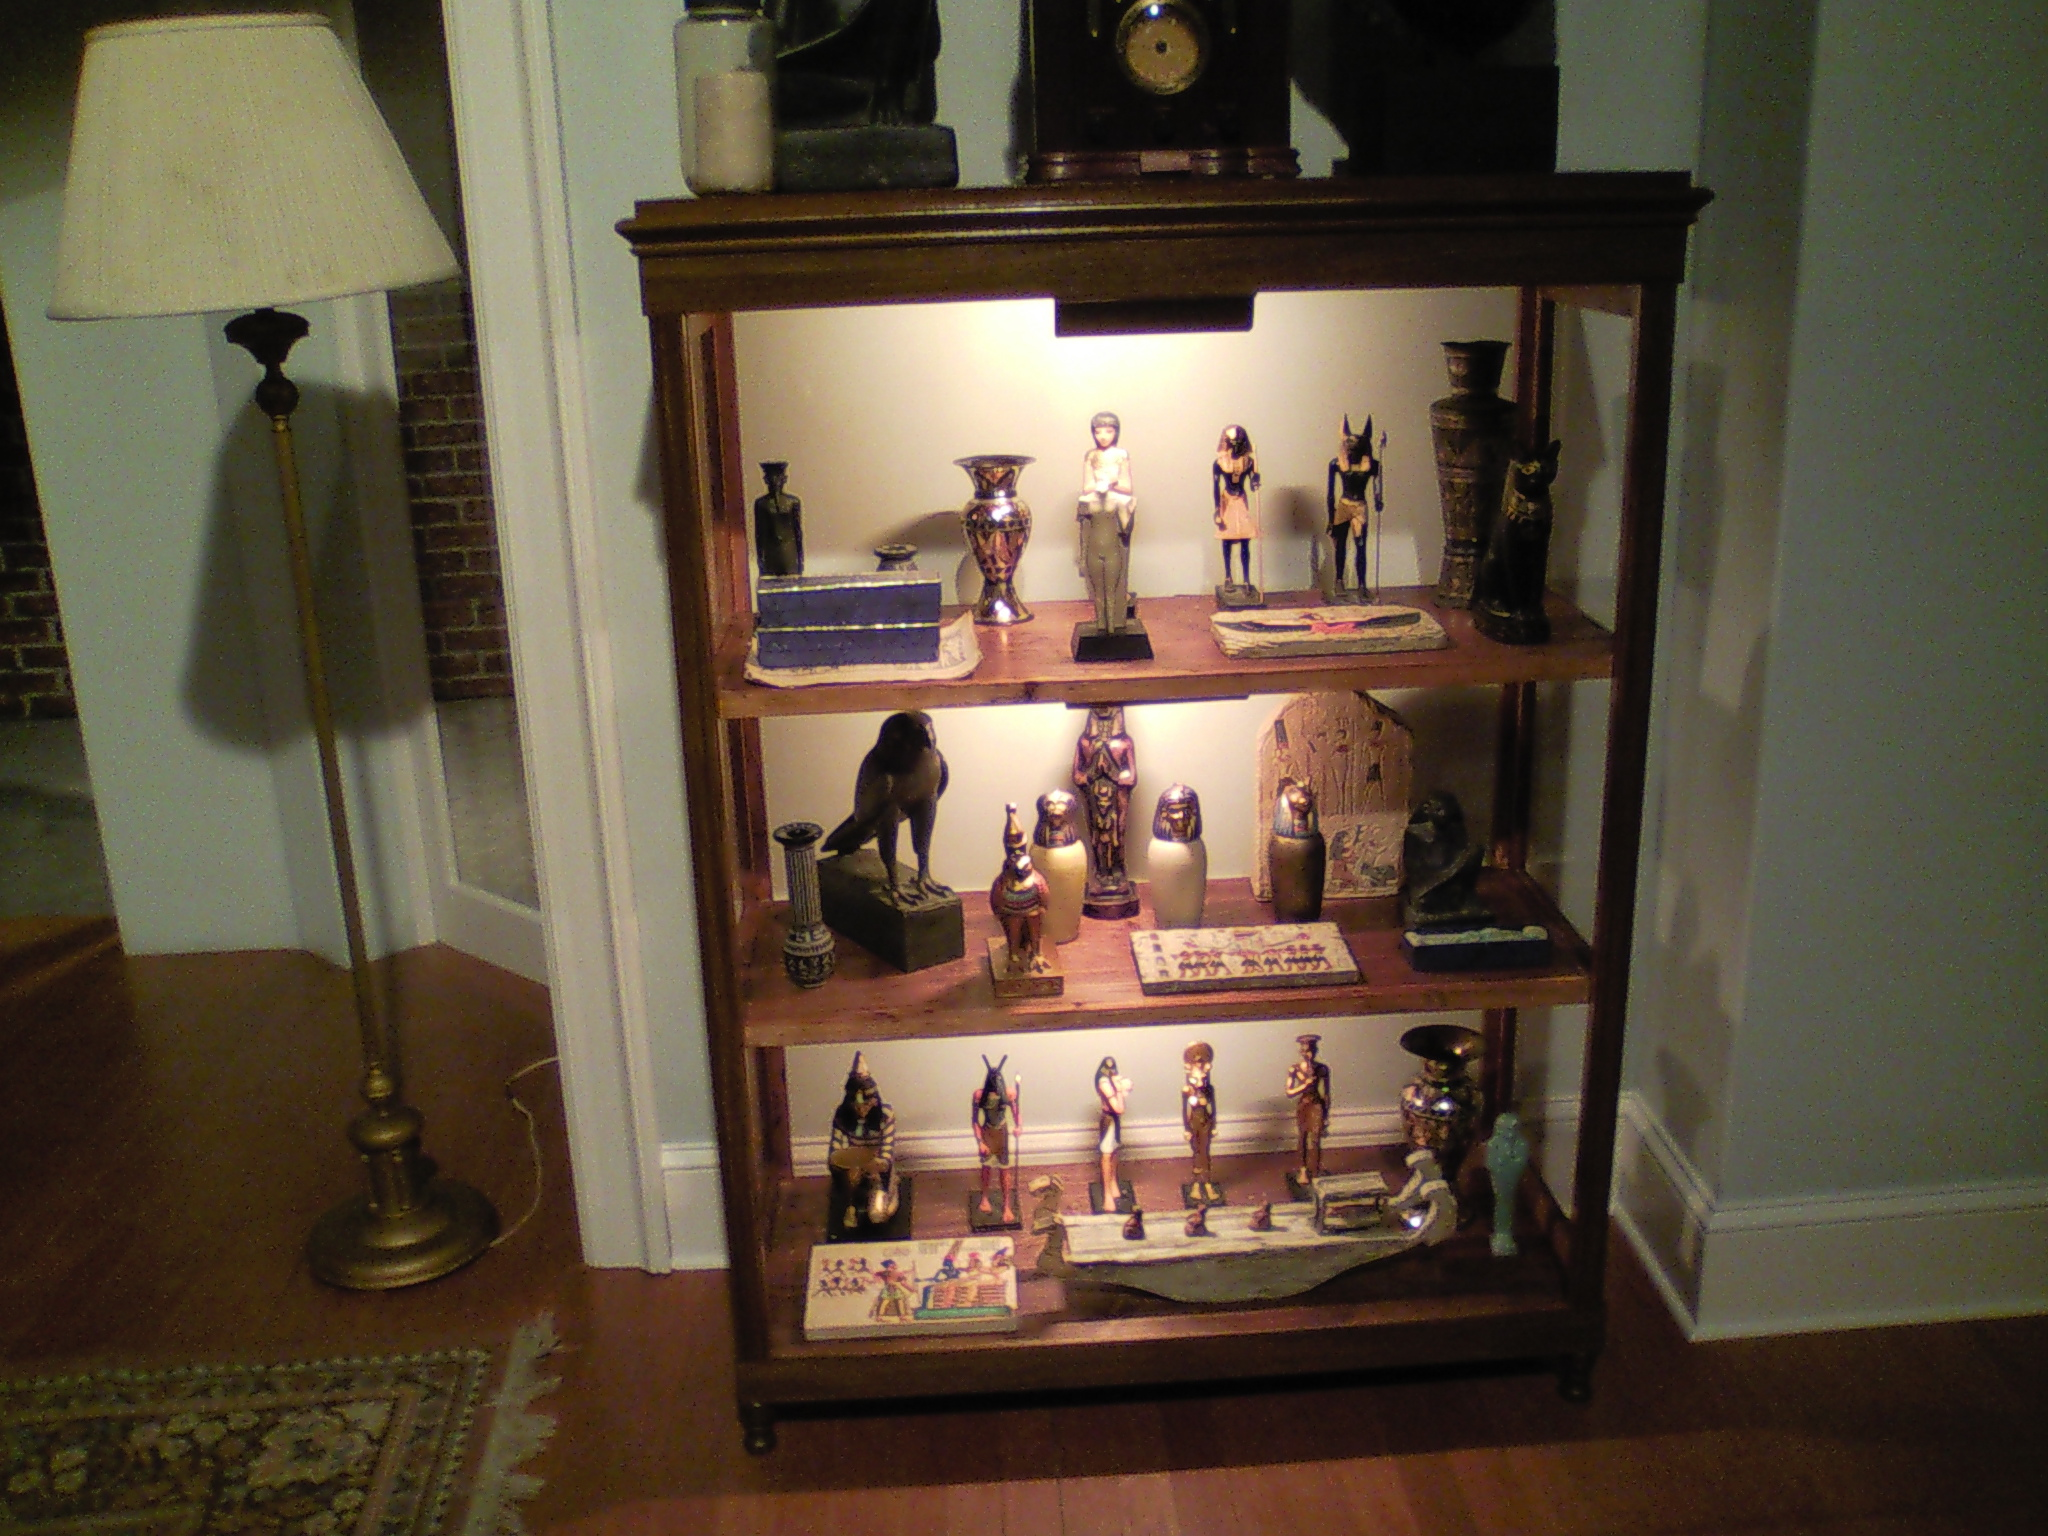 Freud's Last Session  curio cabinets fully dressed.